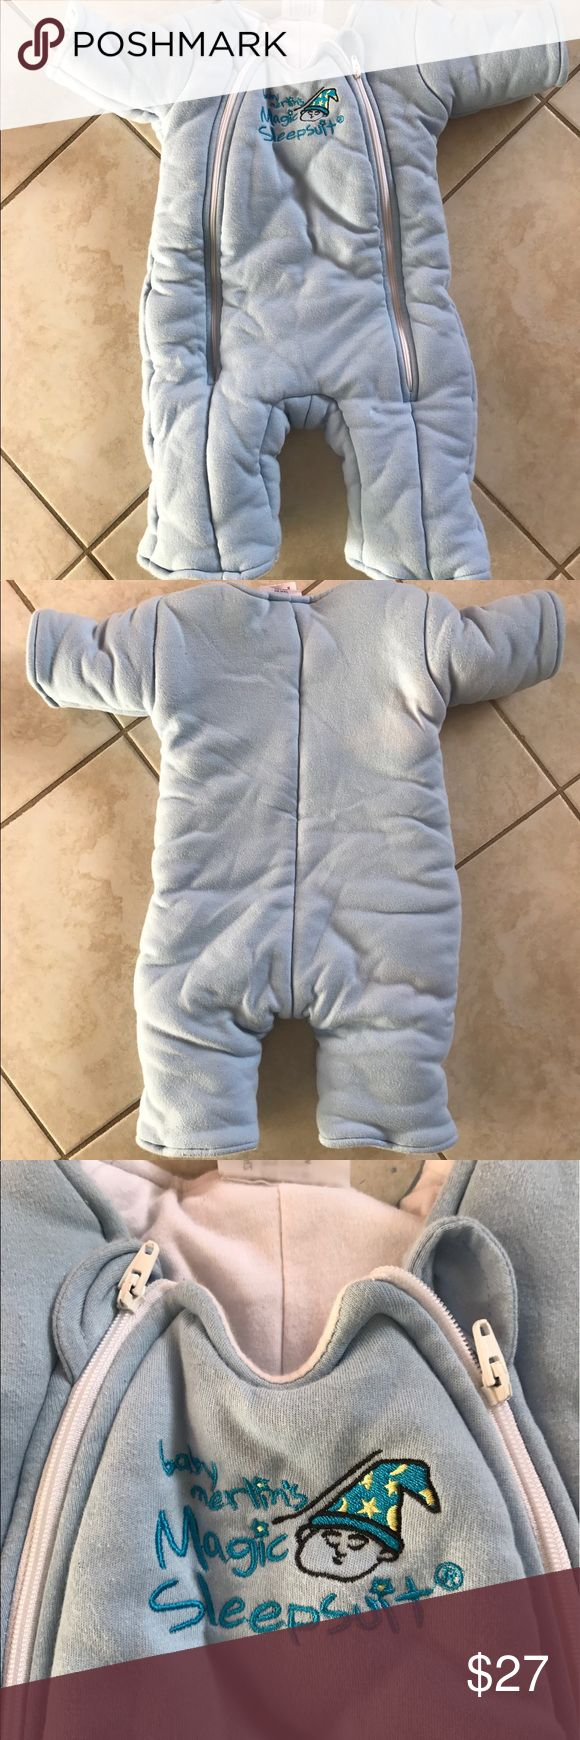 Baby Merlin's Magic Sleepsuit Sz Large 18-21 lbs Used Baby Merlin's Magic Sleepsuit in size Large or 6-9 Months (18-21 Months). Used for about a month. Washed 2 or 3 times and dried in machine dryer once. 100% Cotton Outer and Inner Layers. 100% Cotton Fill. This item never goes on sale. magic merlin sleepsuit Other